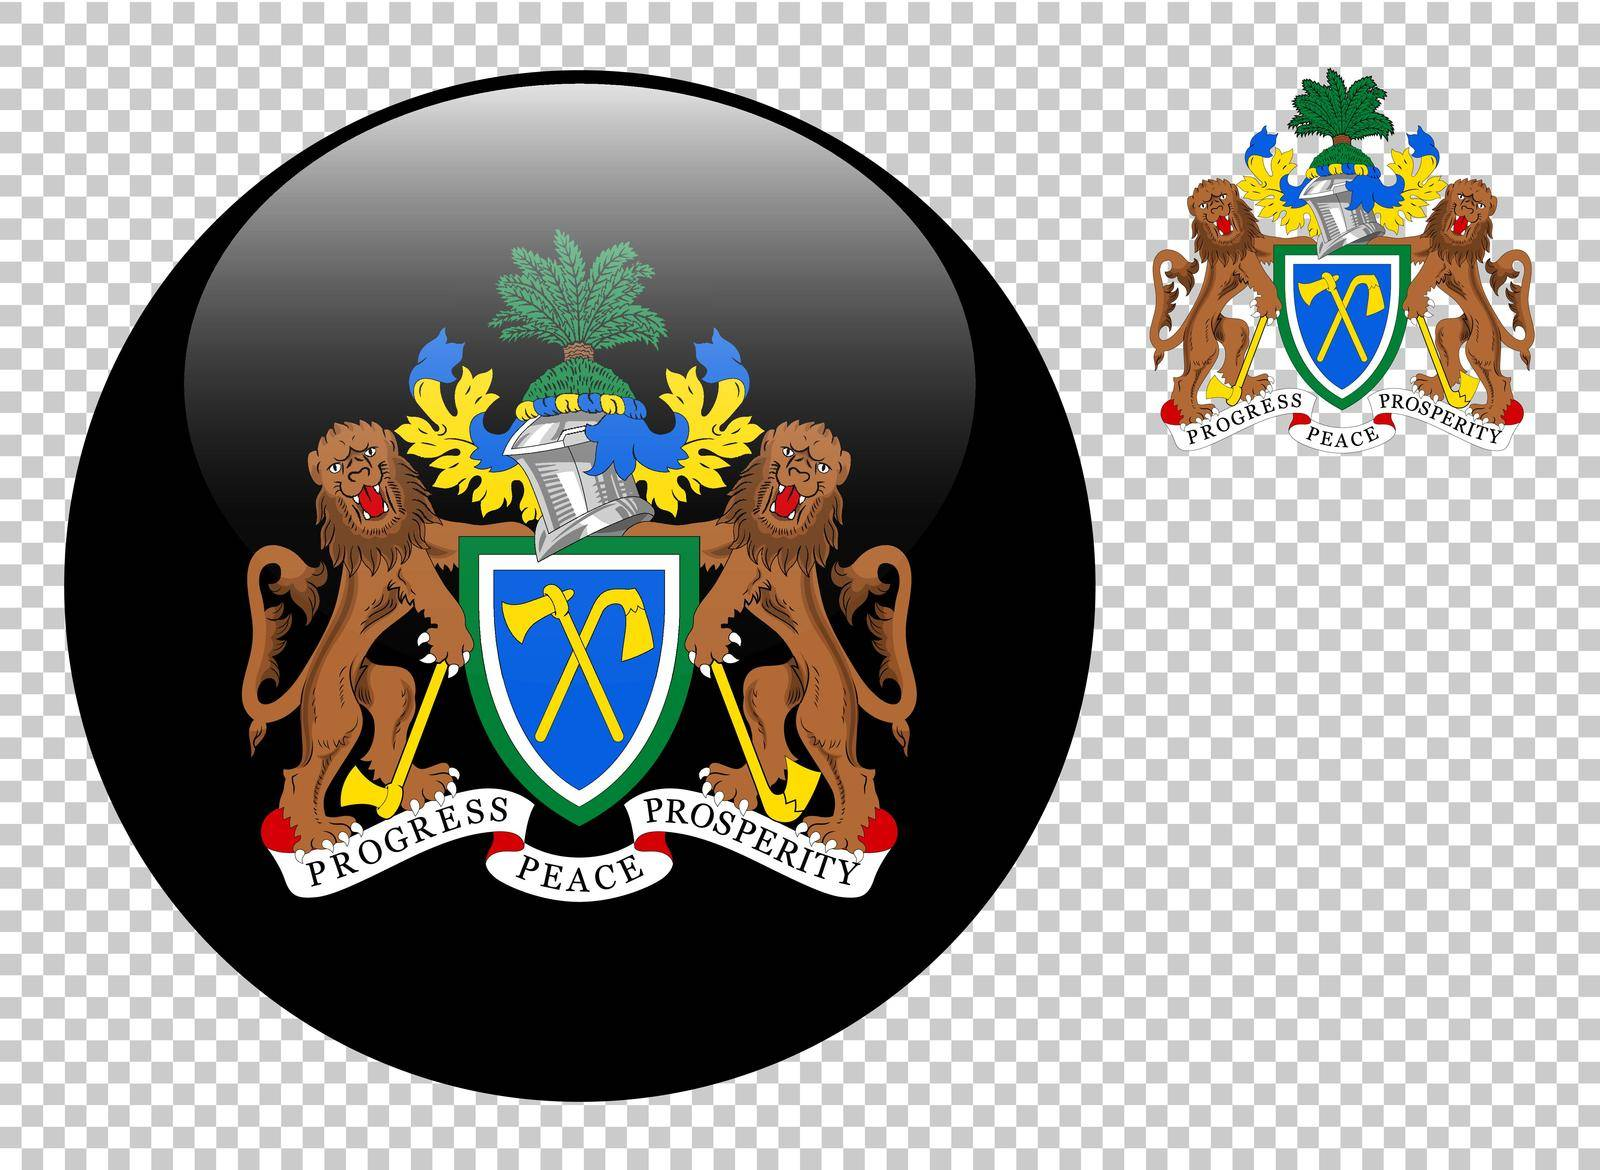 Coat of arms of Gambia vector illustration on a transparent background